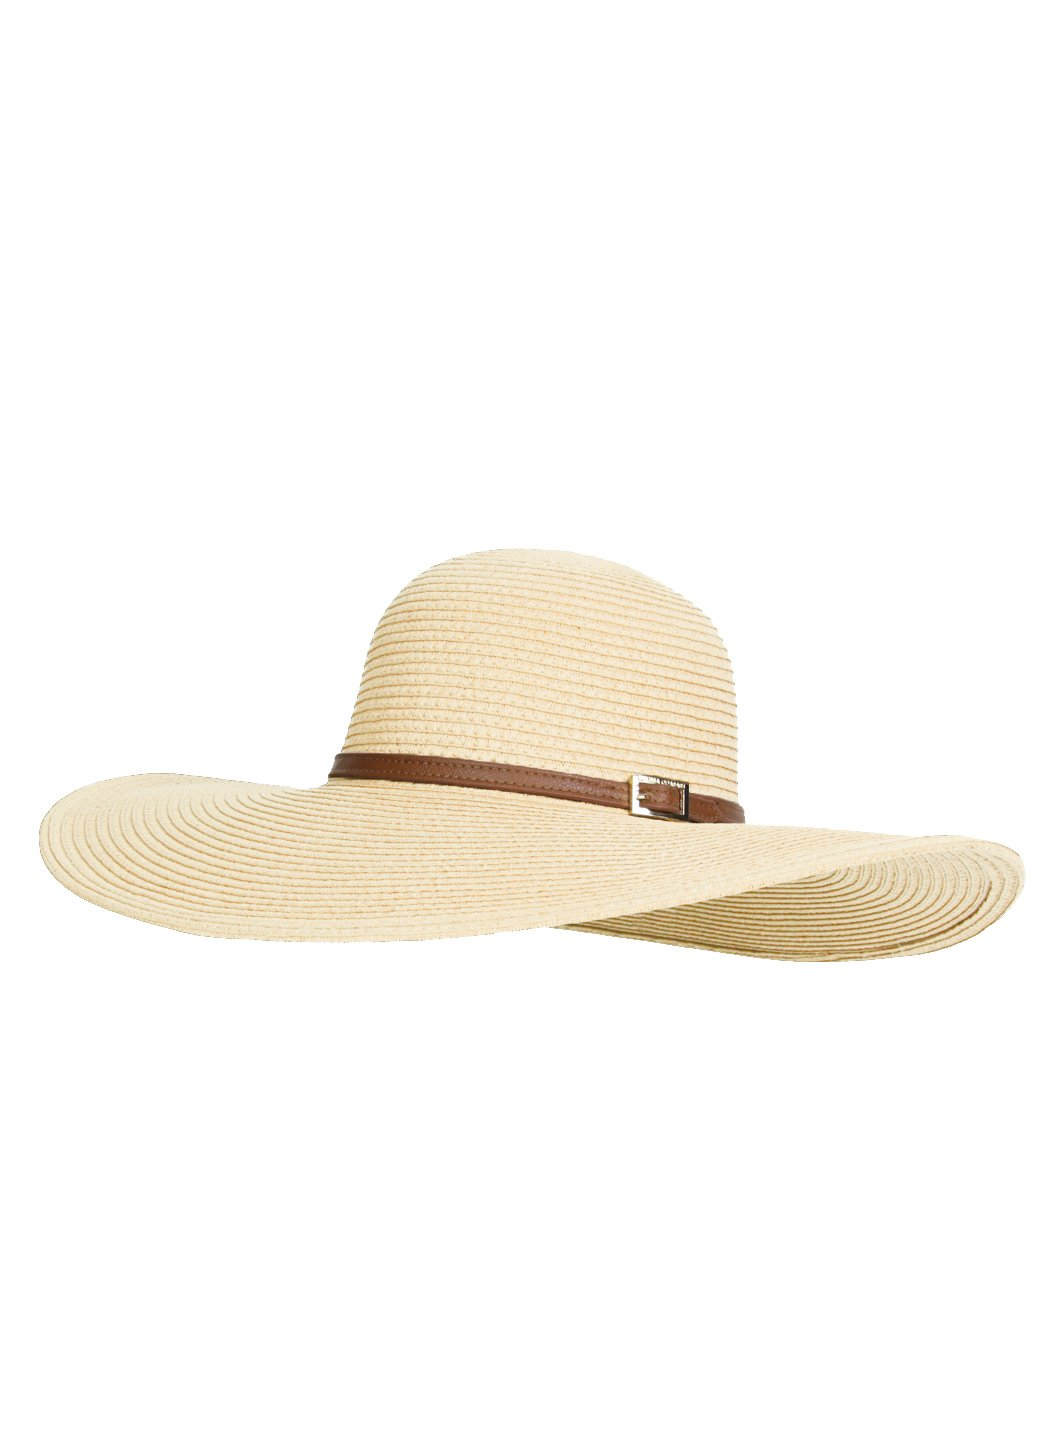 jemima wide brim beach hat cream 2019